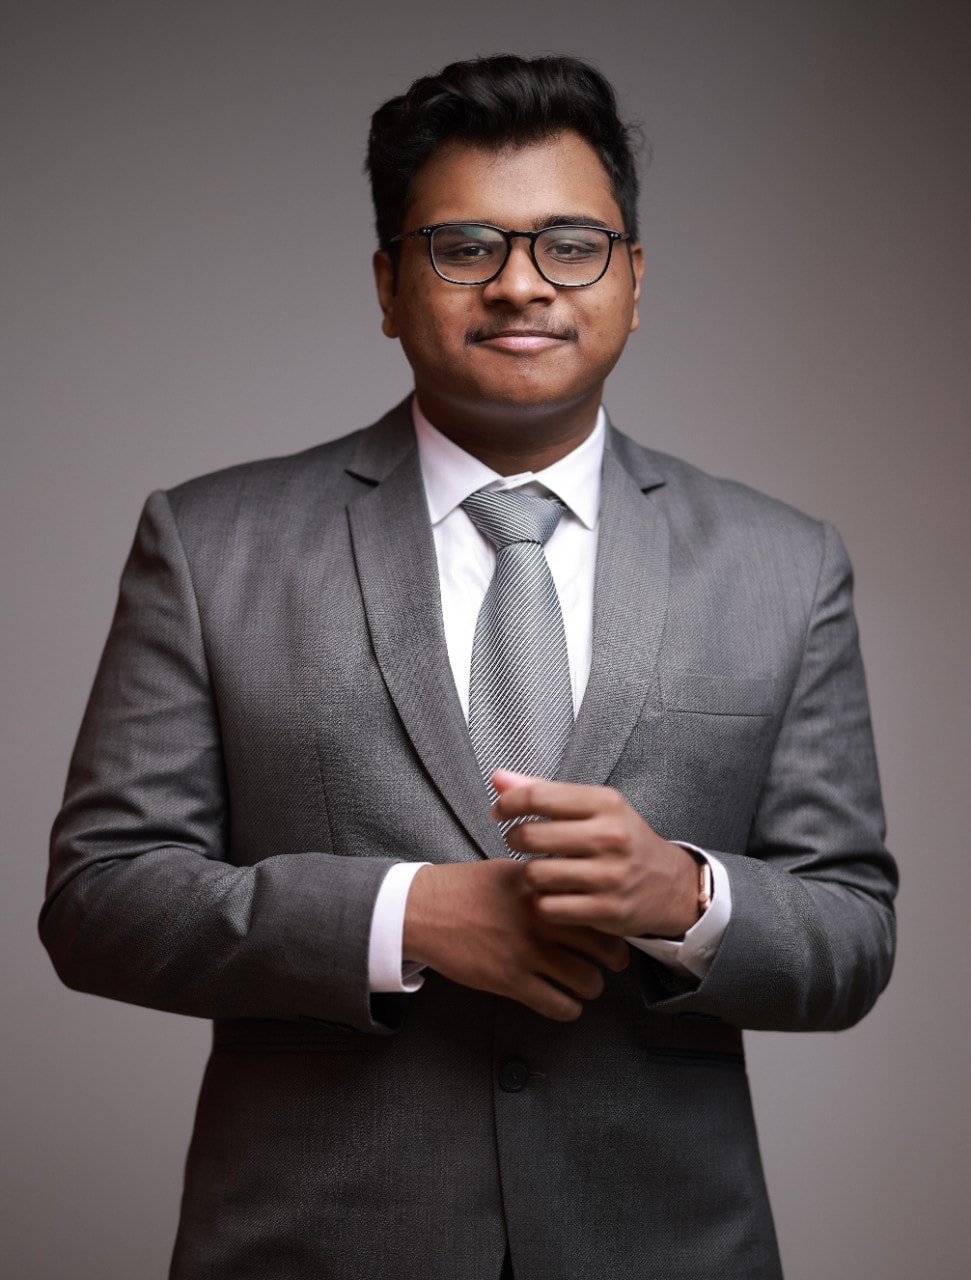 Young man wearing suit